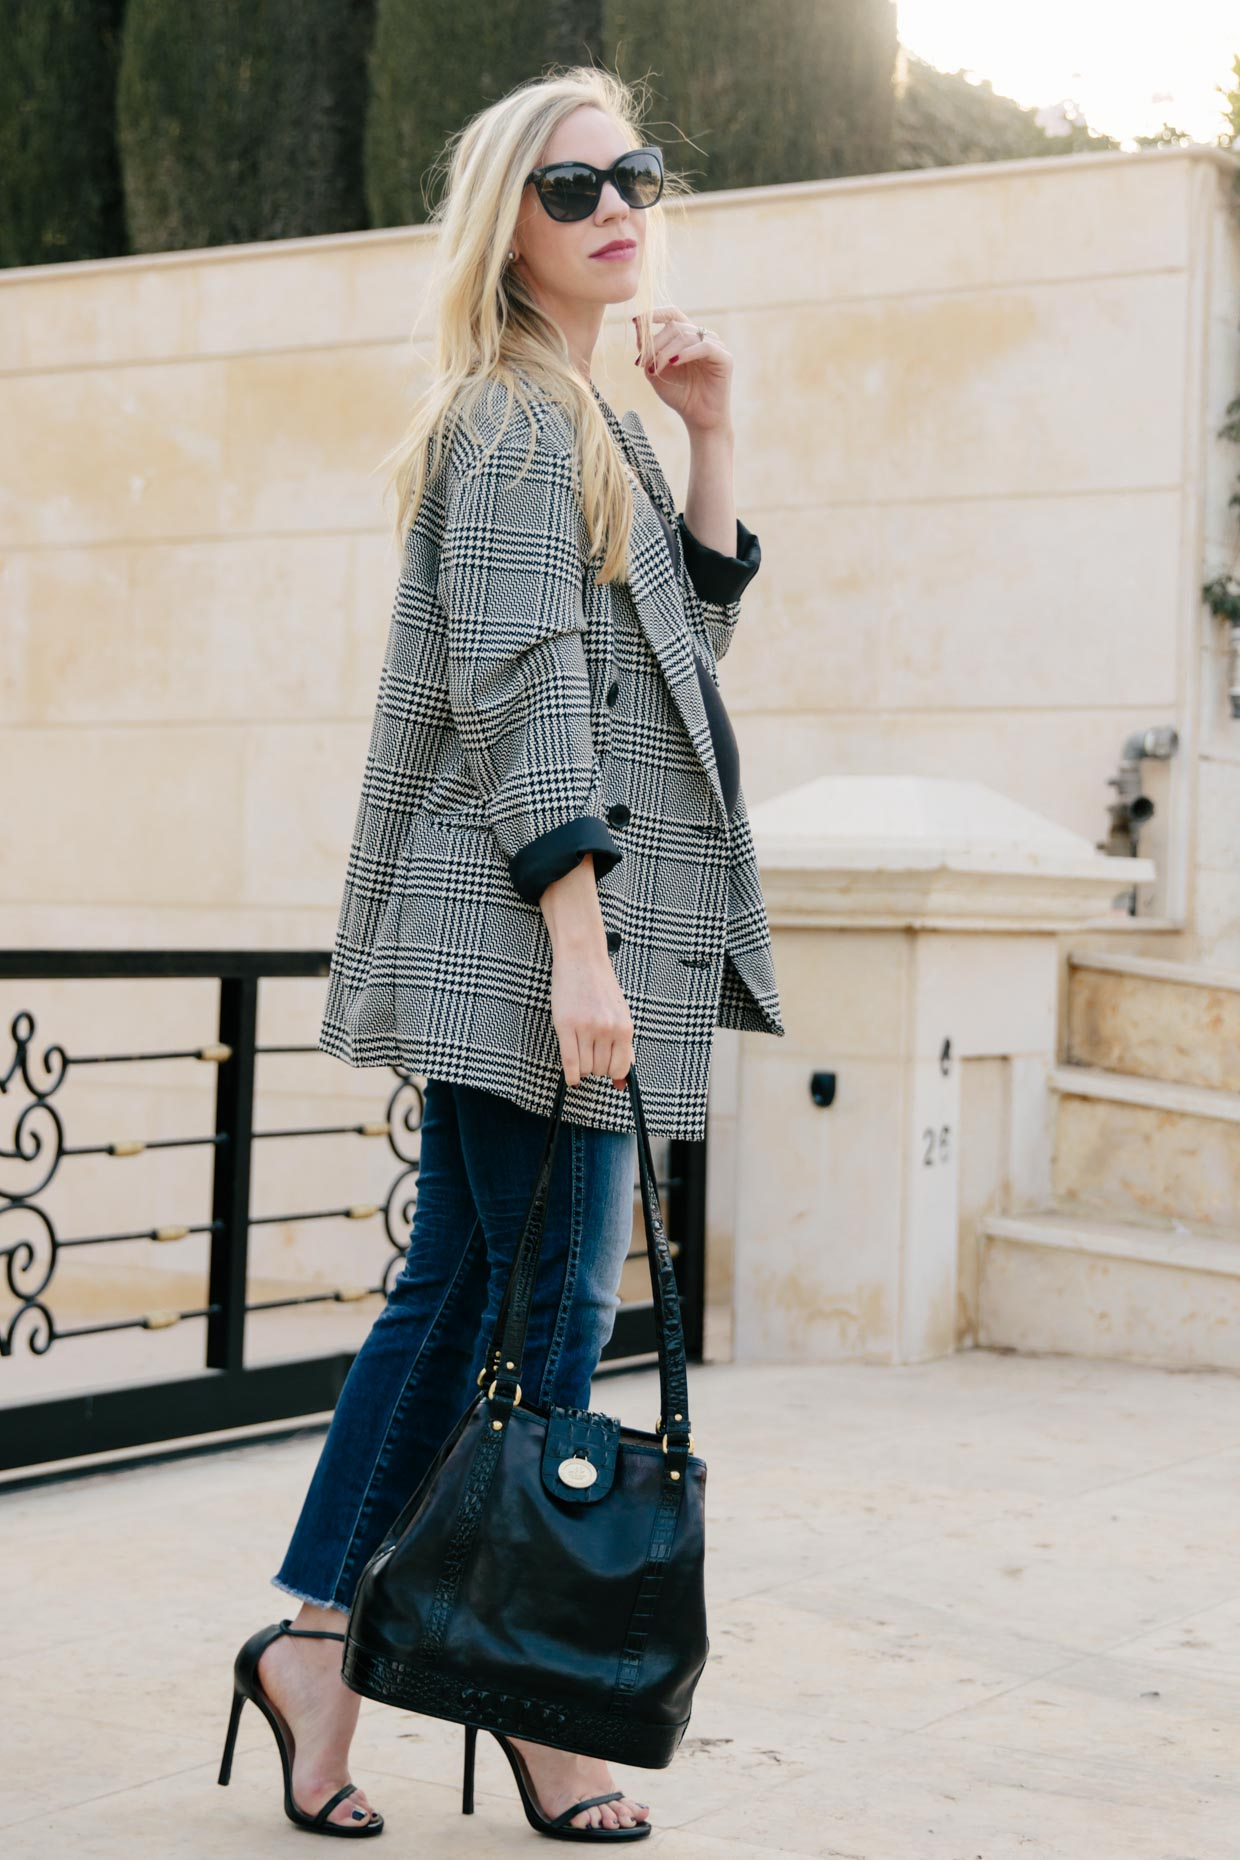 Meagan-Brandon-fashion-blogger-of-Meagans-Moda-wears-Zara-oversized-plaid-blazer-with-straight-leg-jeans-for-fall-how-to-wear-a-plaid-blazer-maternity-style